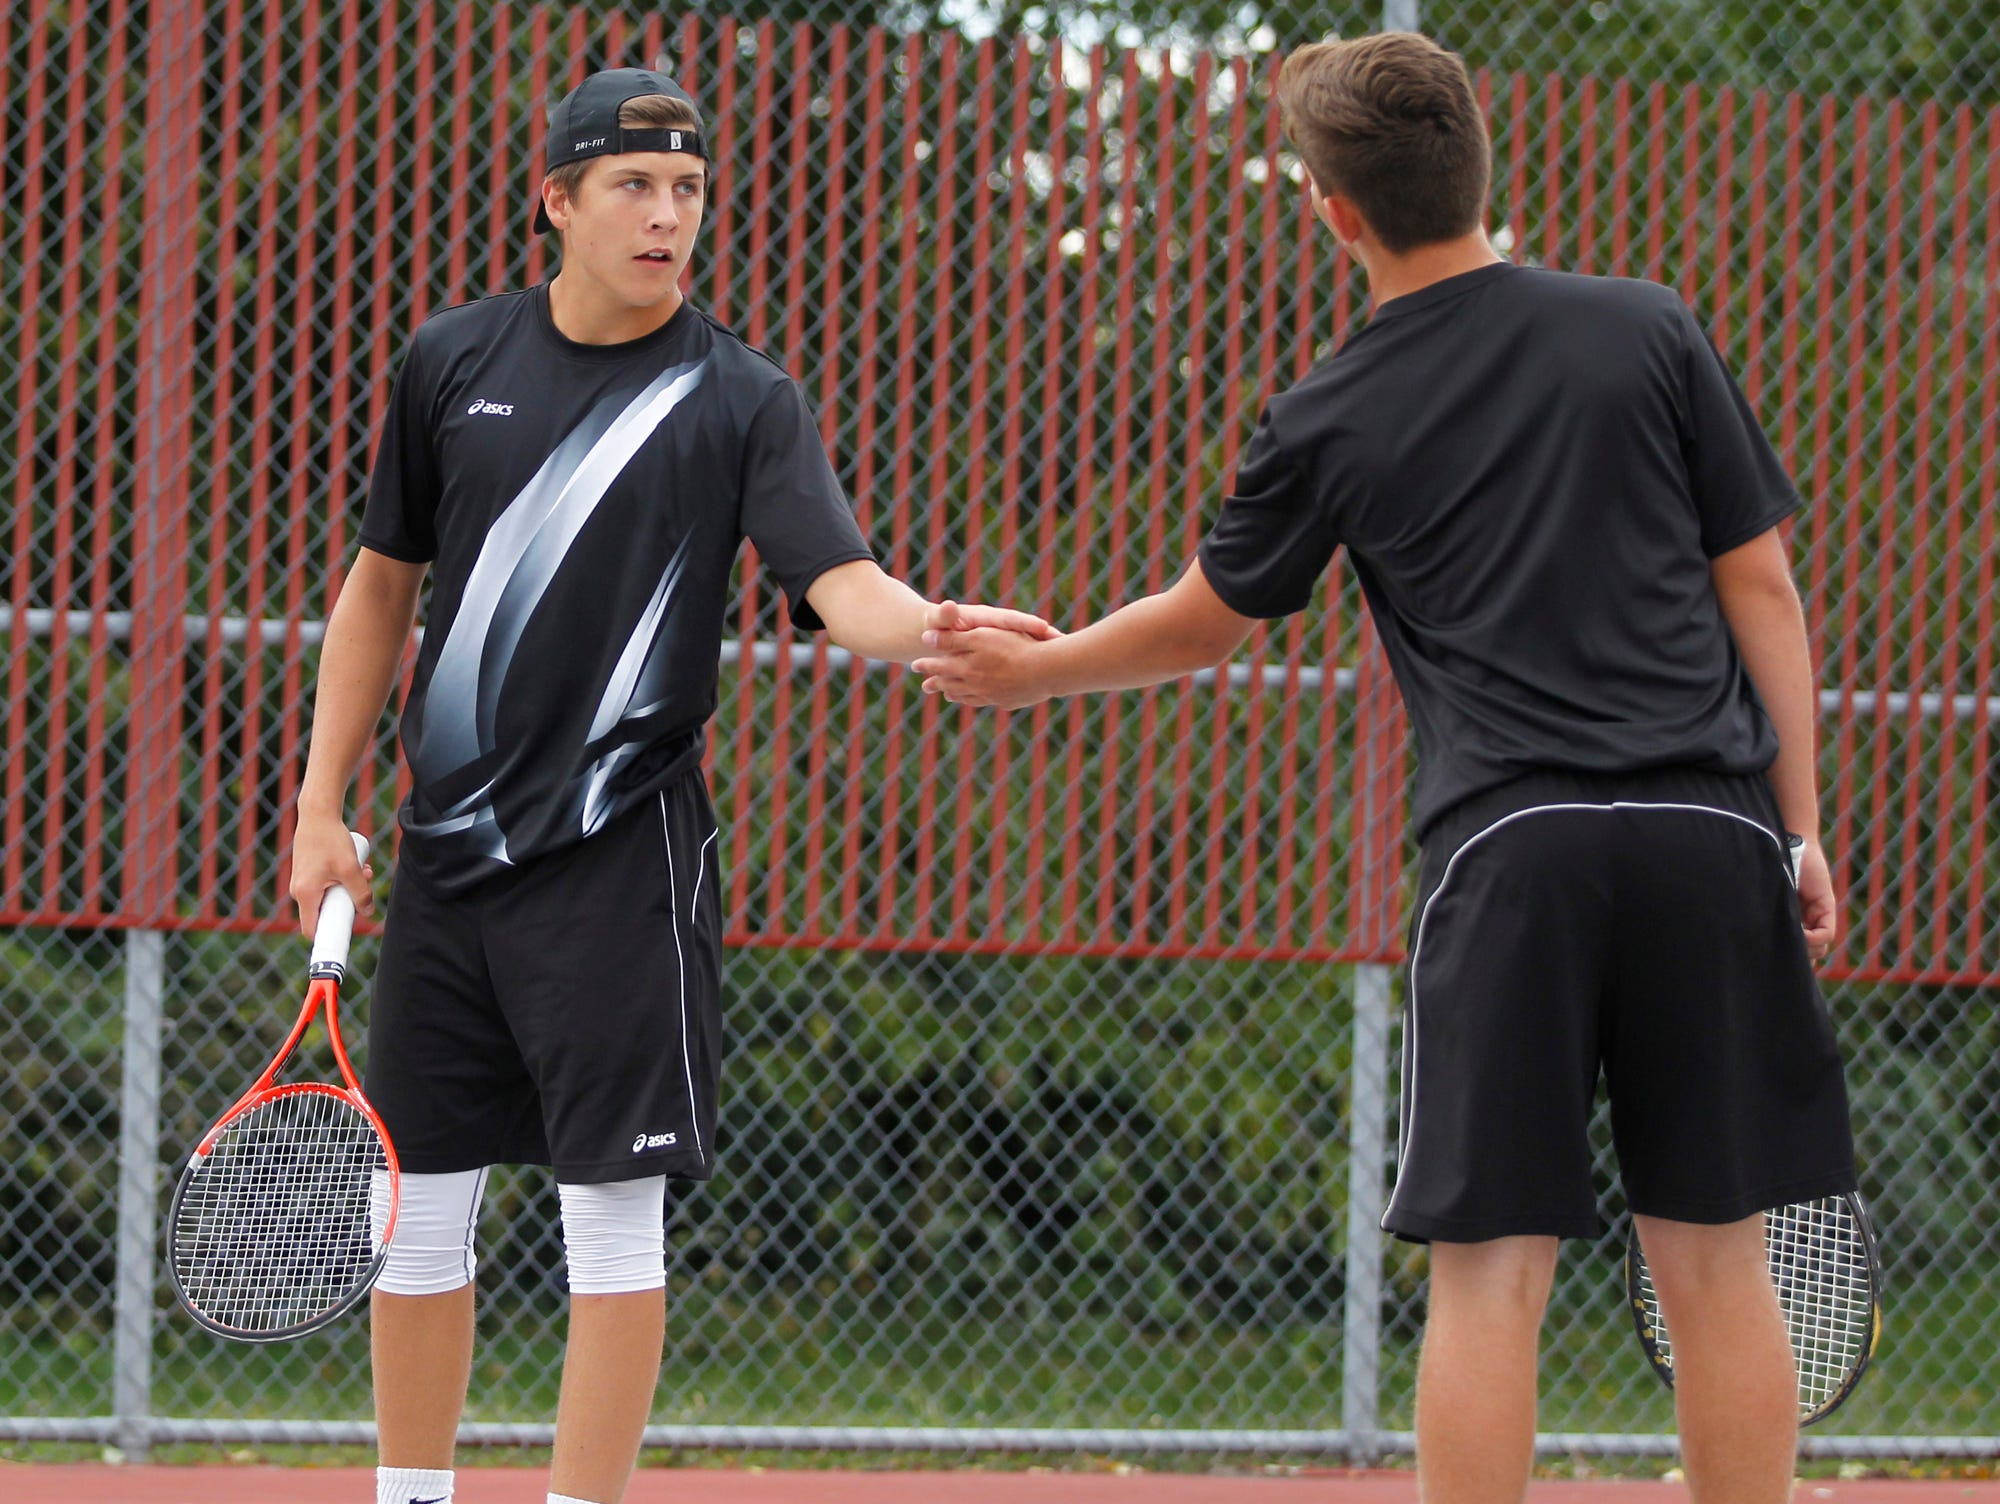 Lafayette Jeff's Danny Isbell, left, and Jacob Isbell celebrate a point against West Lafayette's Jatin Sinahal and Danial Watanabe at No. 2 doubles in the boys tennis sectional championship Friday, October 2, 2015, at Cumberland Courts in West Lafayette.